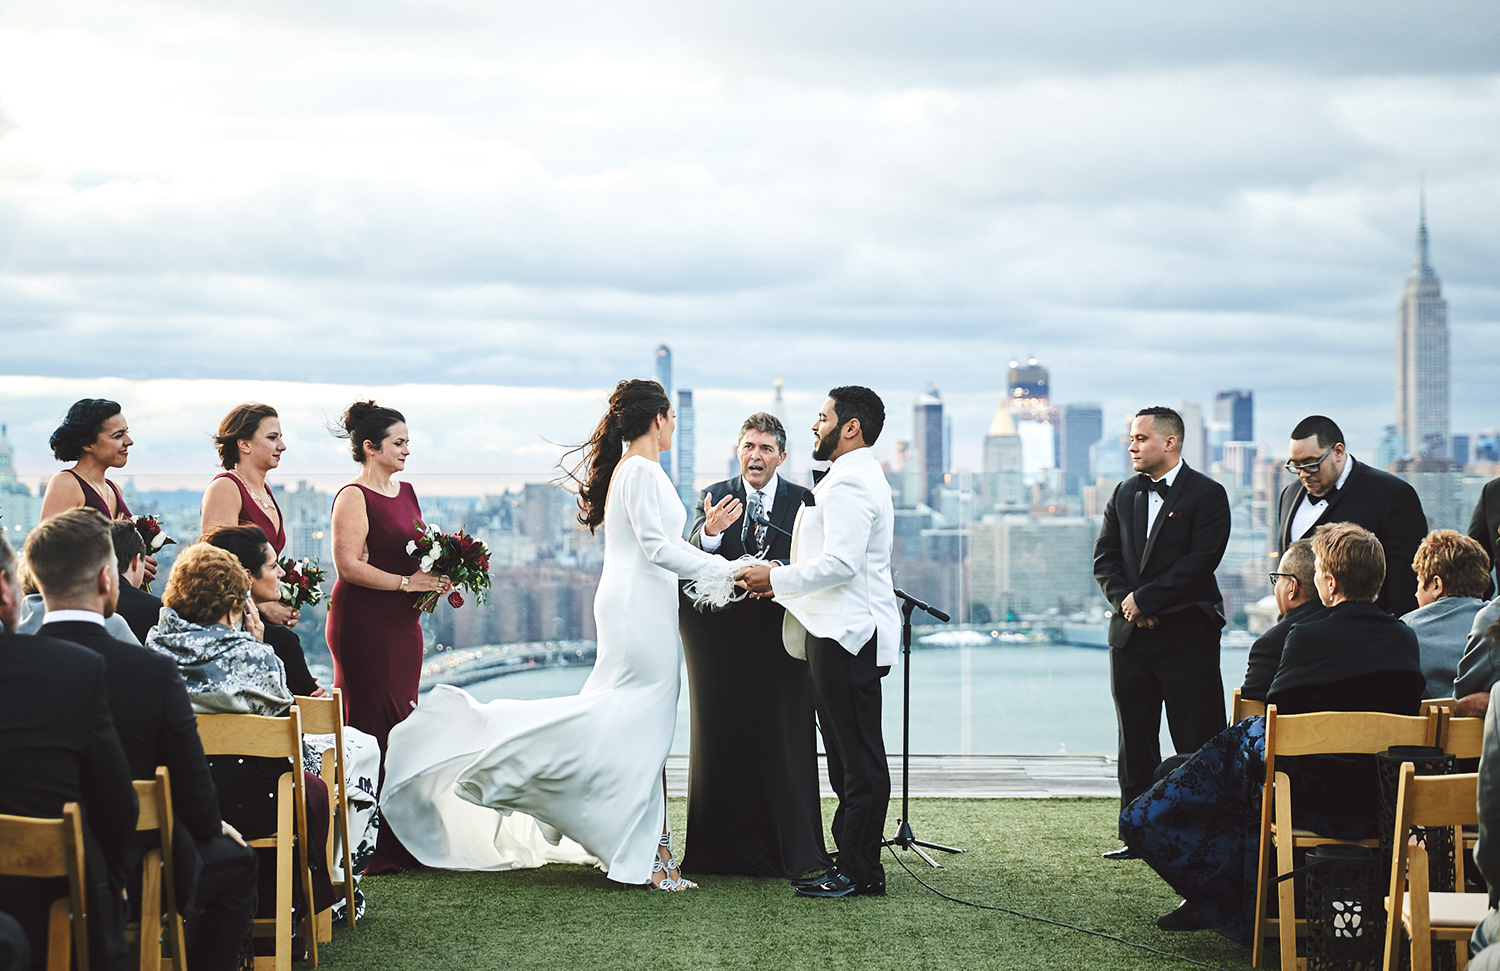 170930_WilliamValeWeddingPhotography_BrooklynWeddingPhotographer_By_BriJohnsonWeddings_0120.jpg